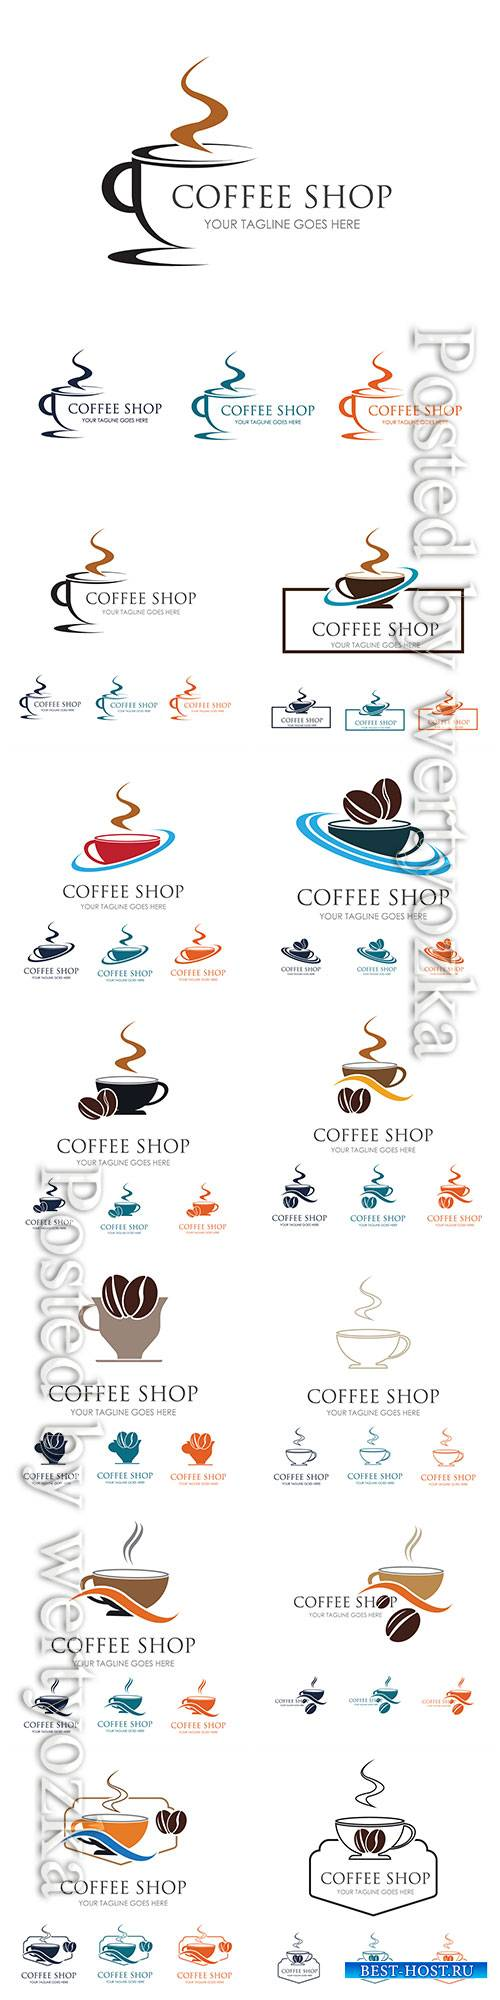 Coffee shop vector logo illustrations